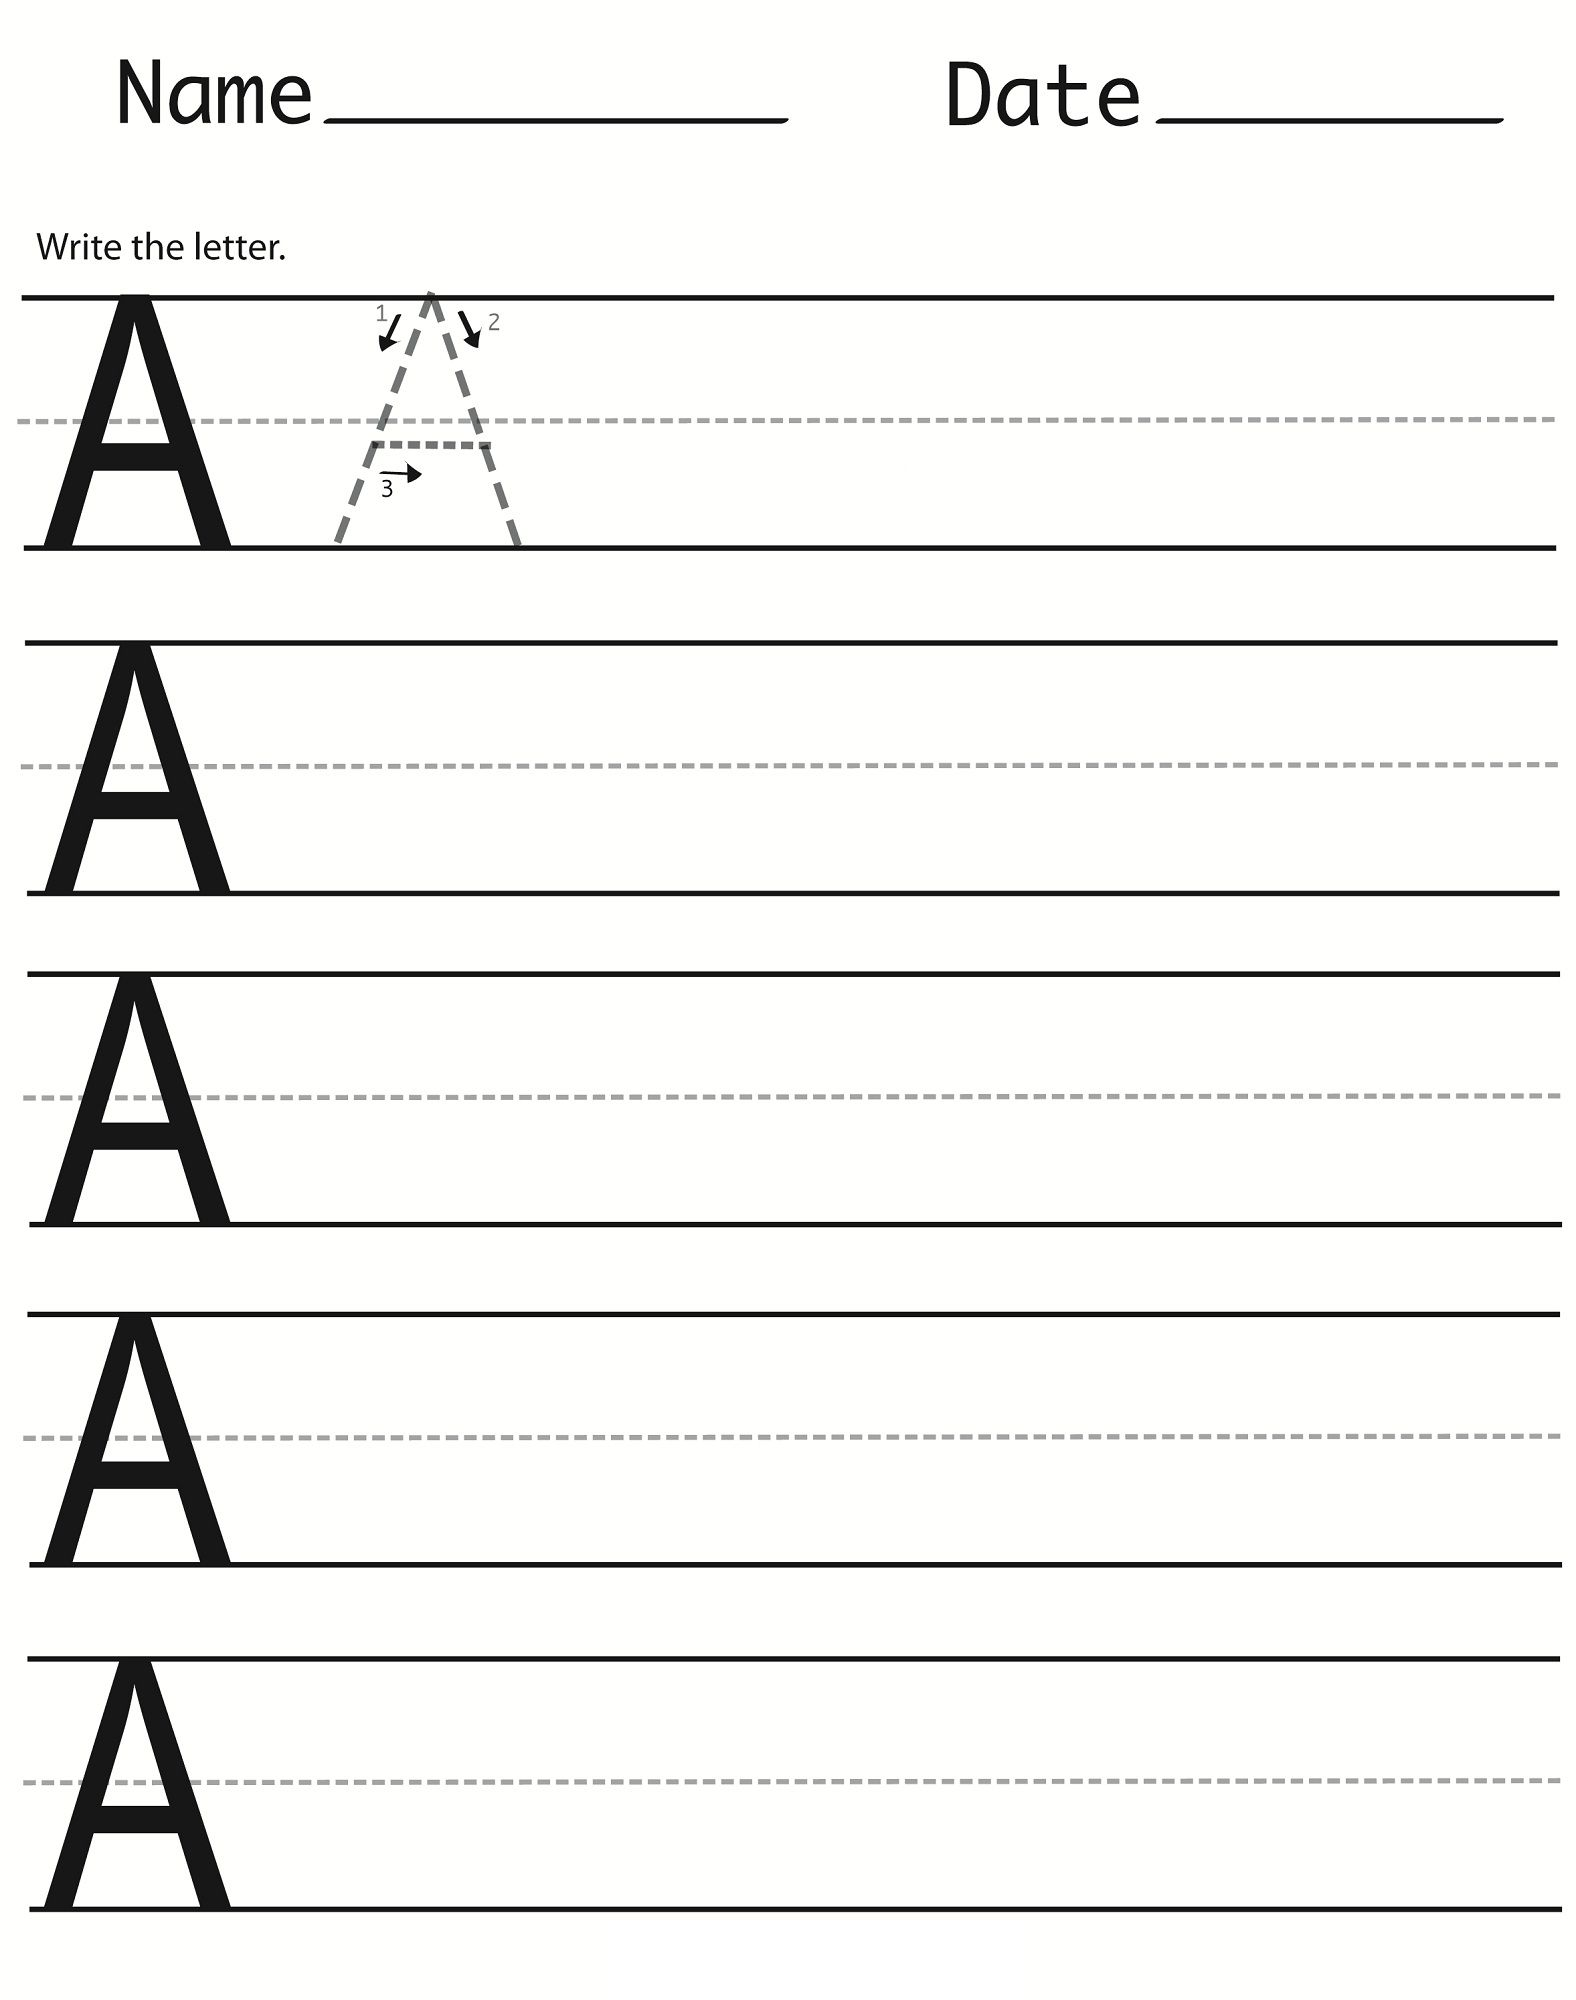 capital letter worksheets printable kids worksheets printable alphabet writing worksheets. Black Bedroom Furniture Sets. Home Design Ideas